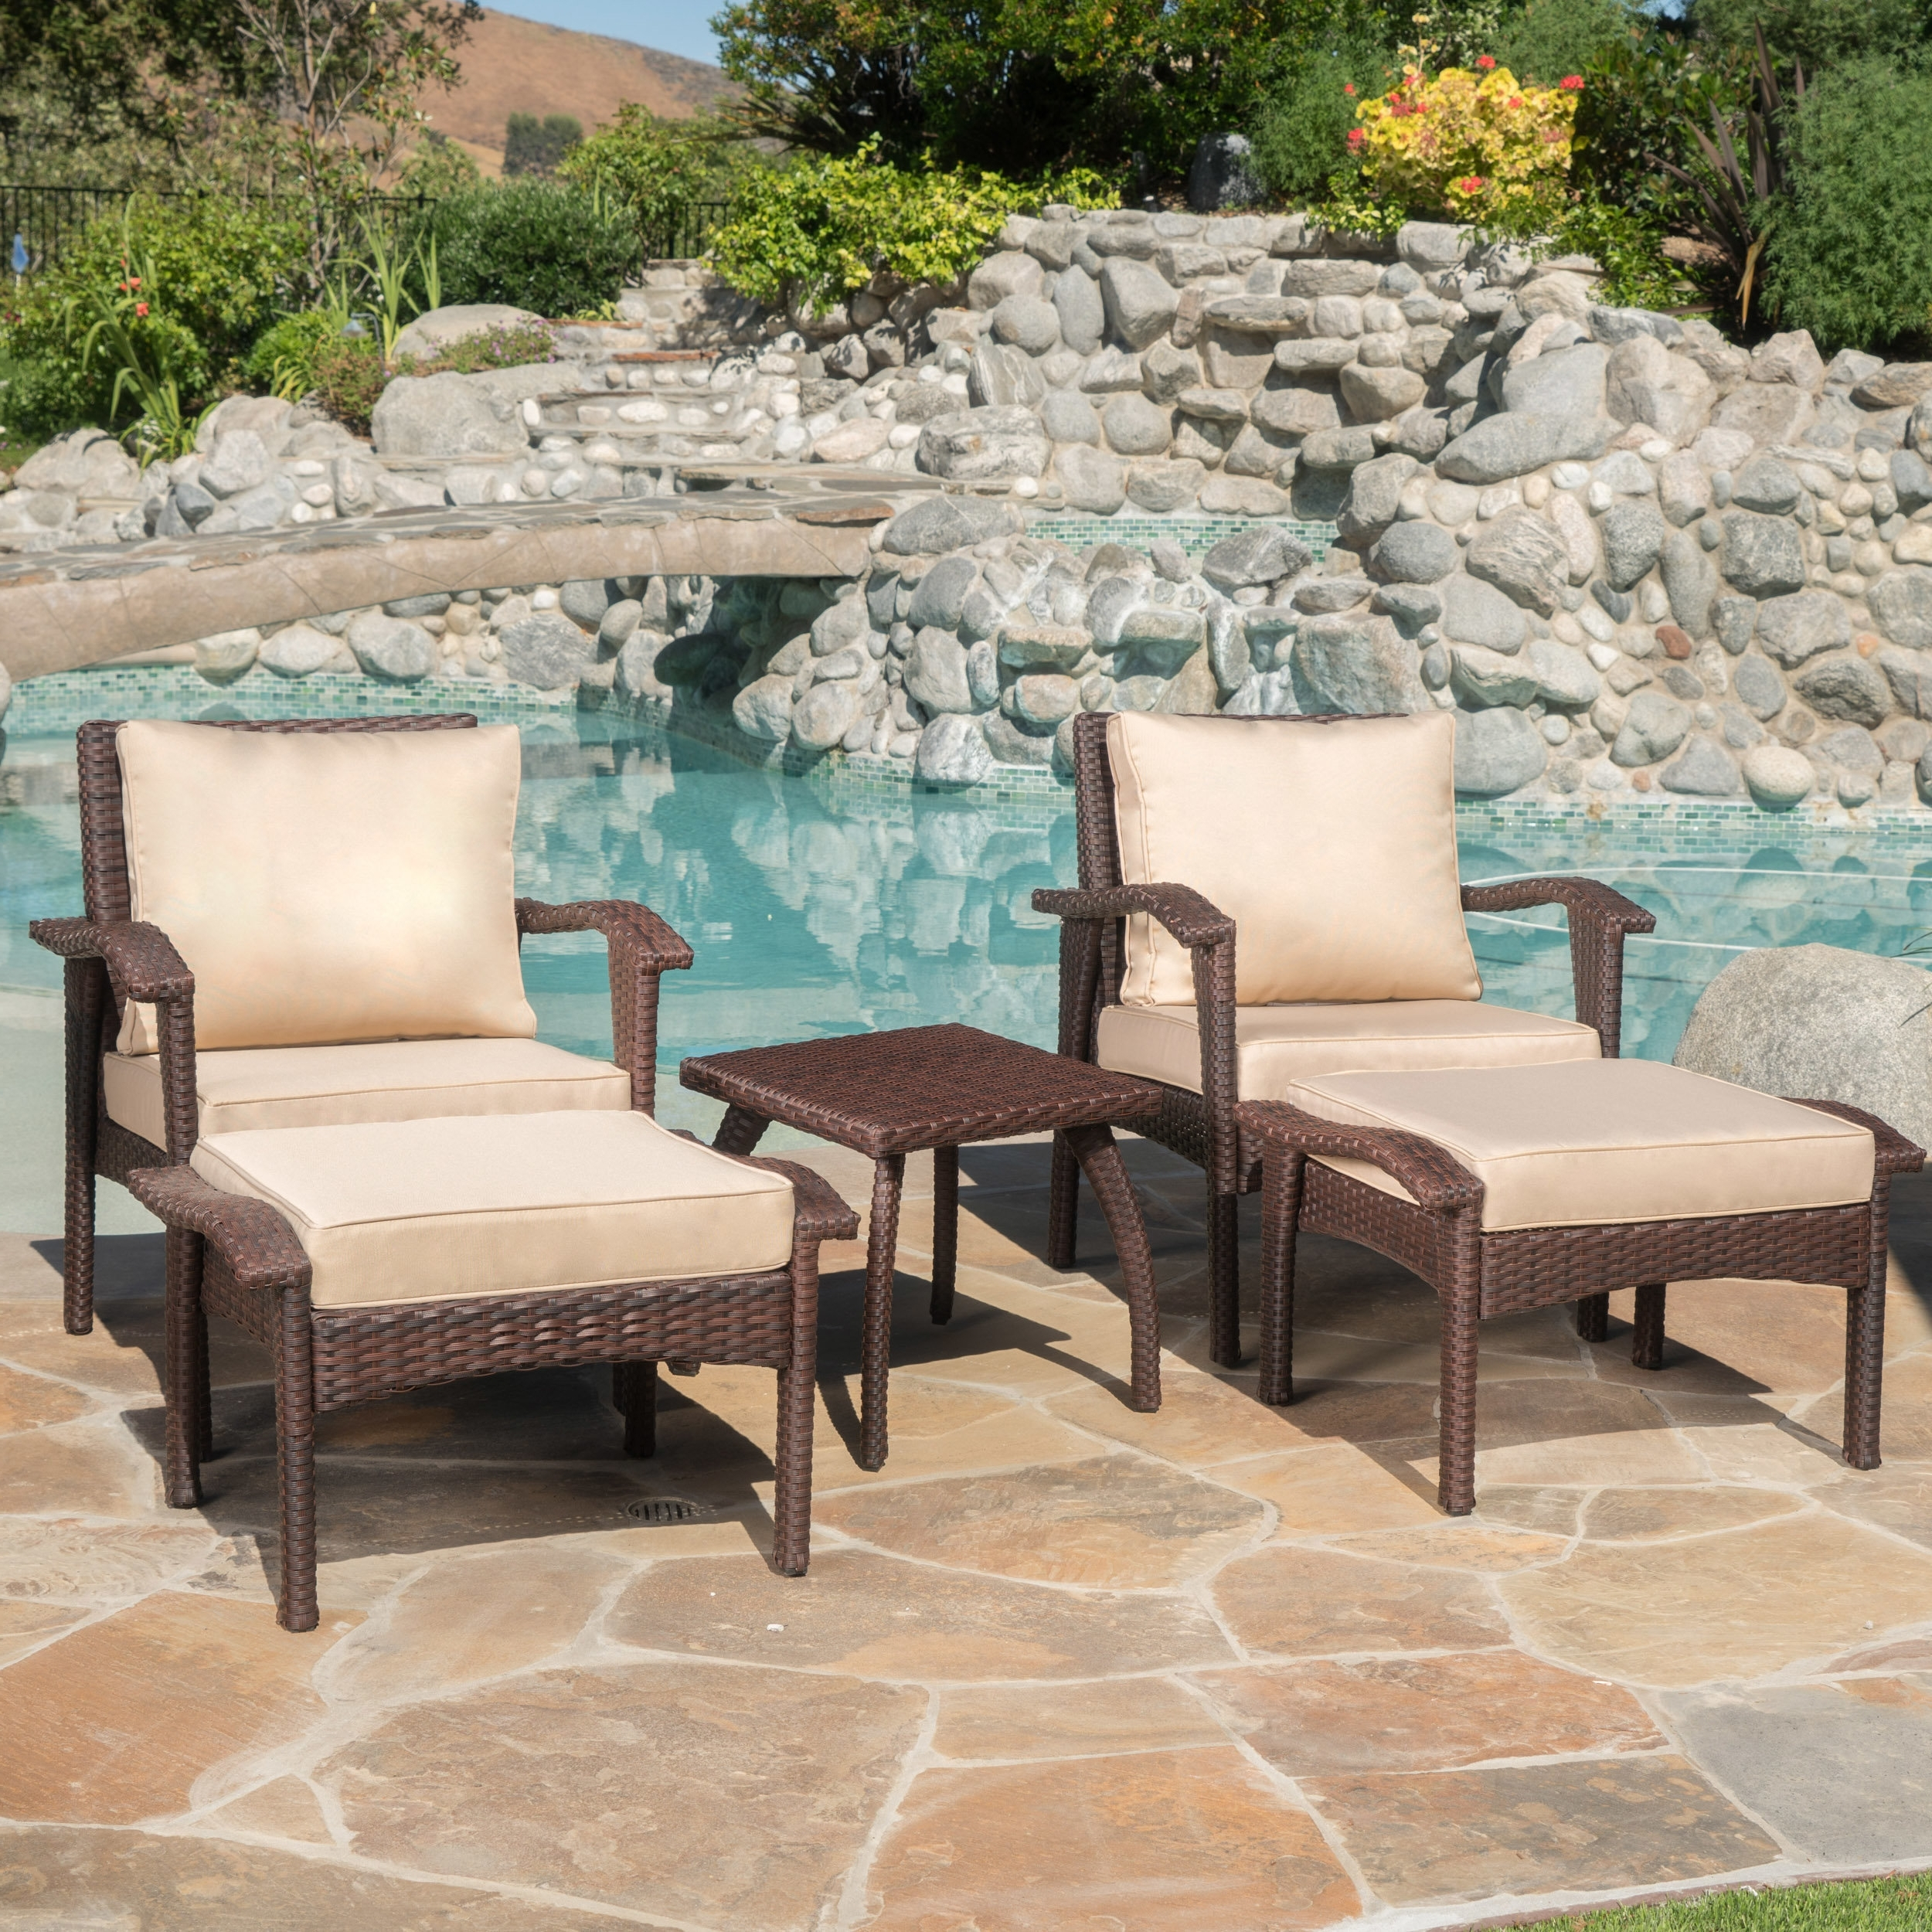 2018 Springboro 5 Piece Conversation Set With Cushions Inside Patio Conversation Sets With Cushions (View 10 of 20)